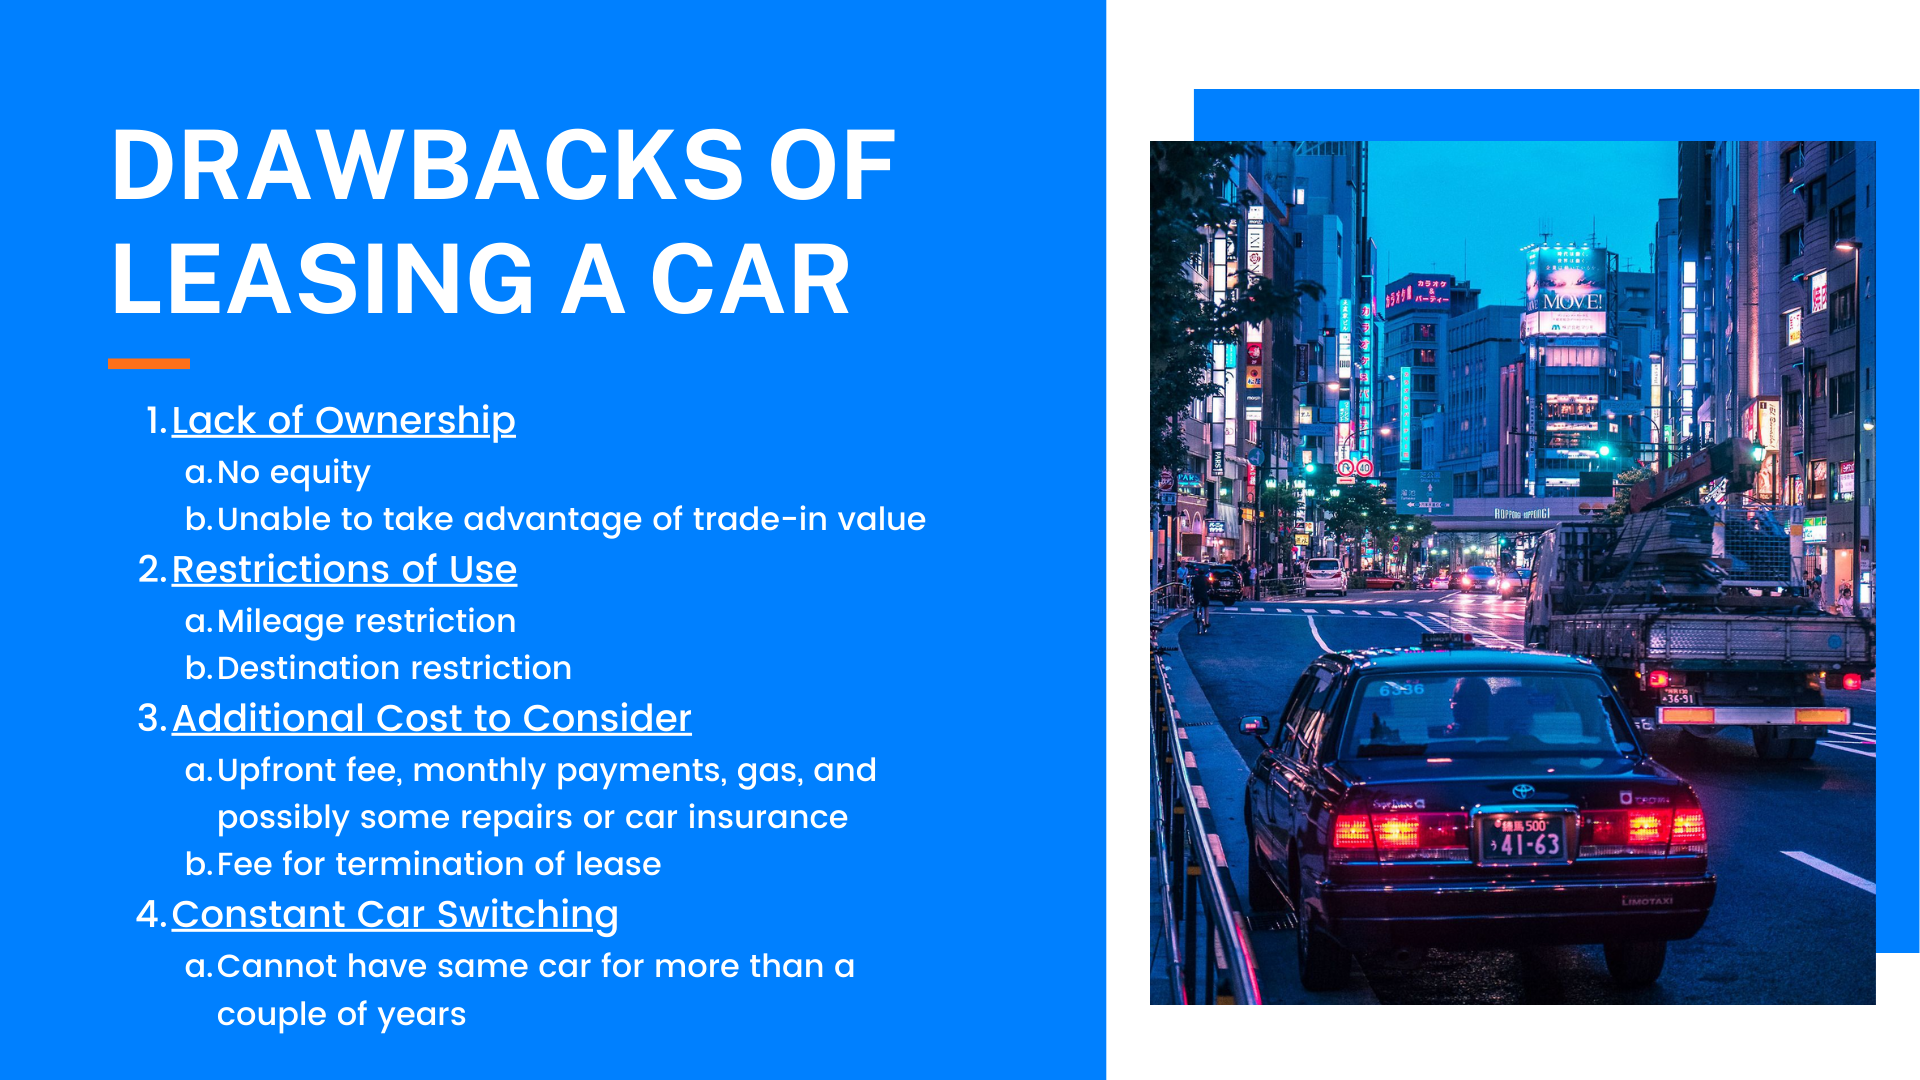 Drawbacks of Leasing a Car: Lack of ownership, Restrictions of use, Additional costs to consider, Constant car switching